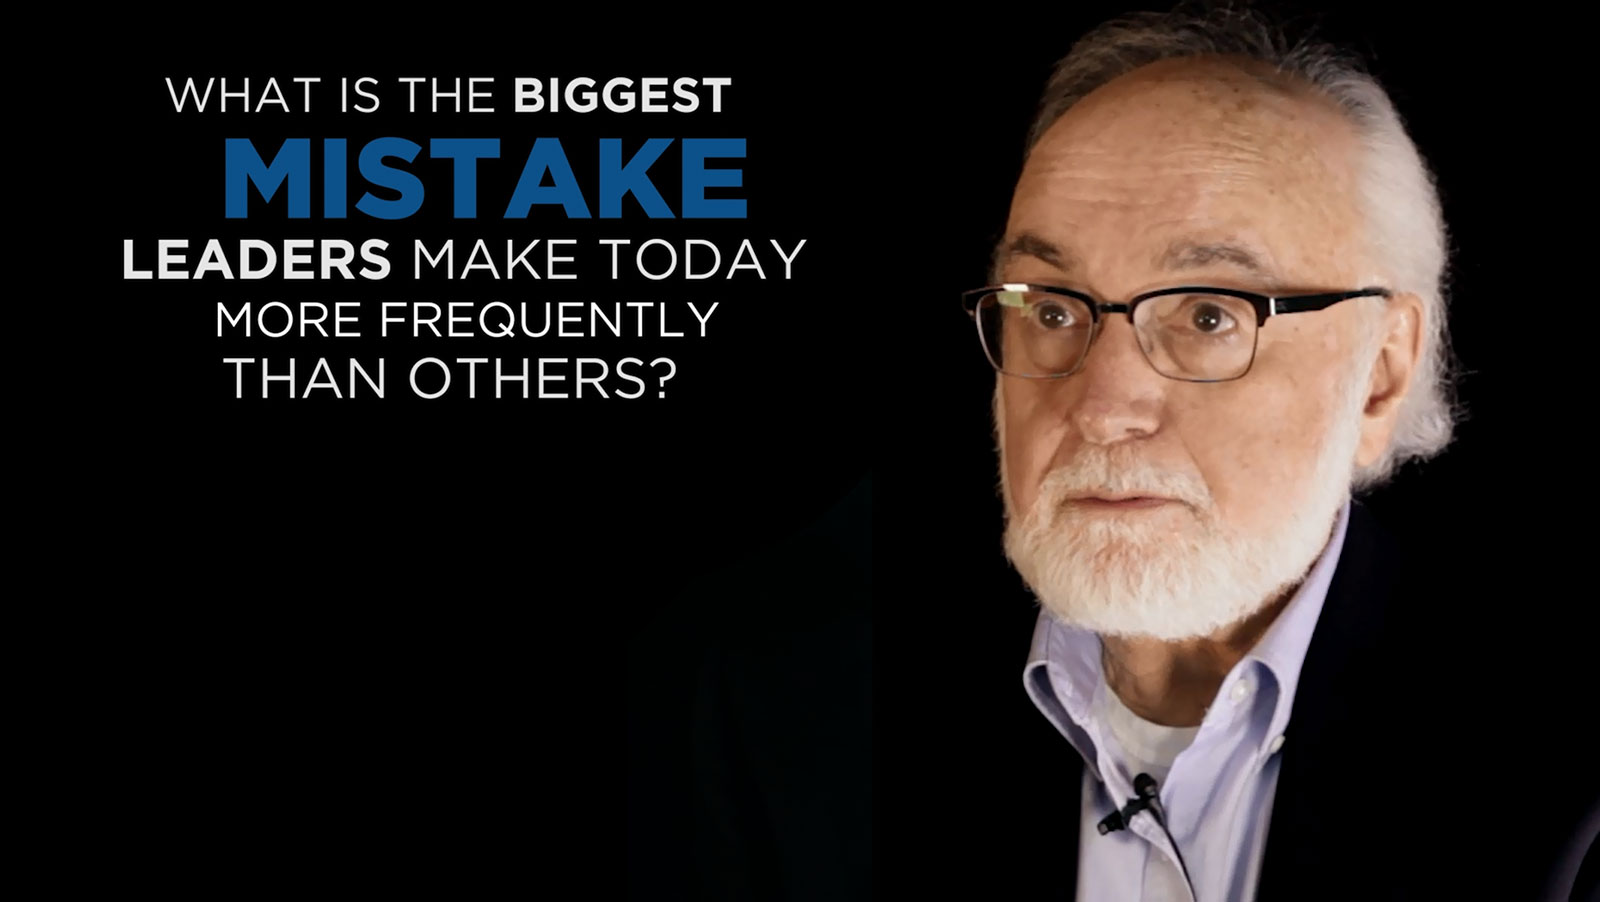 Shared Experience - What is the biggest mistake leaders make today more frequently than others?